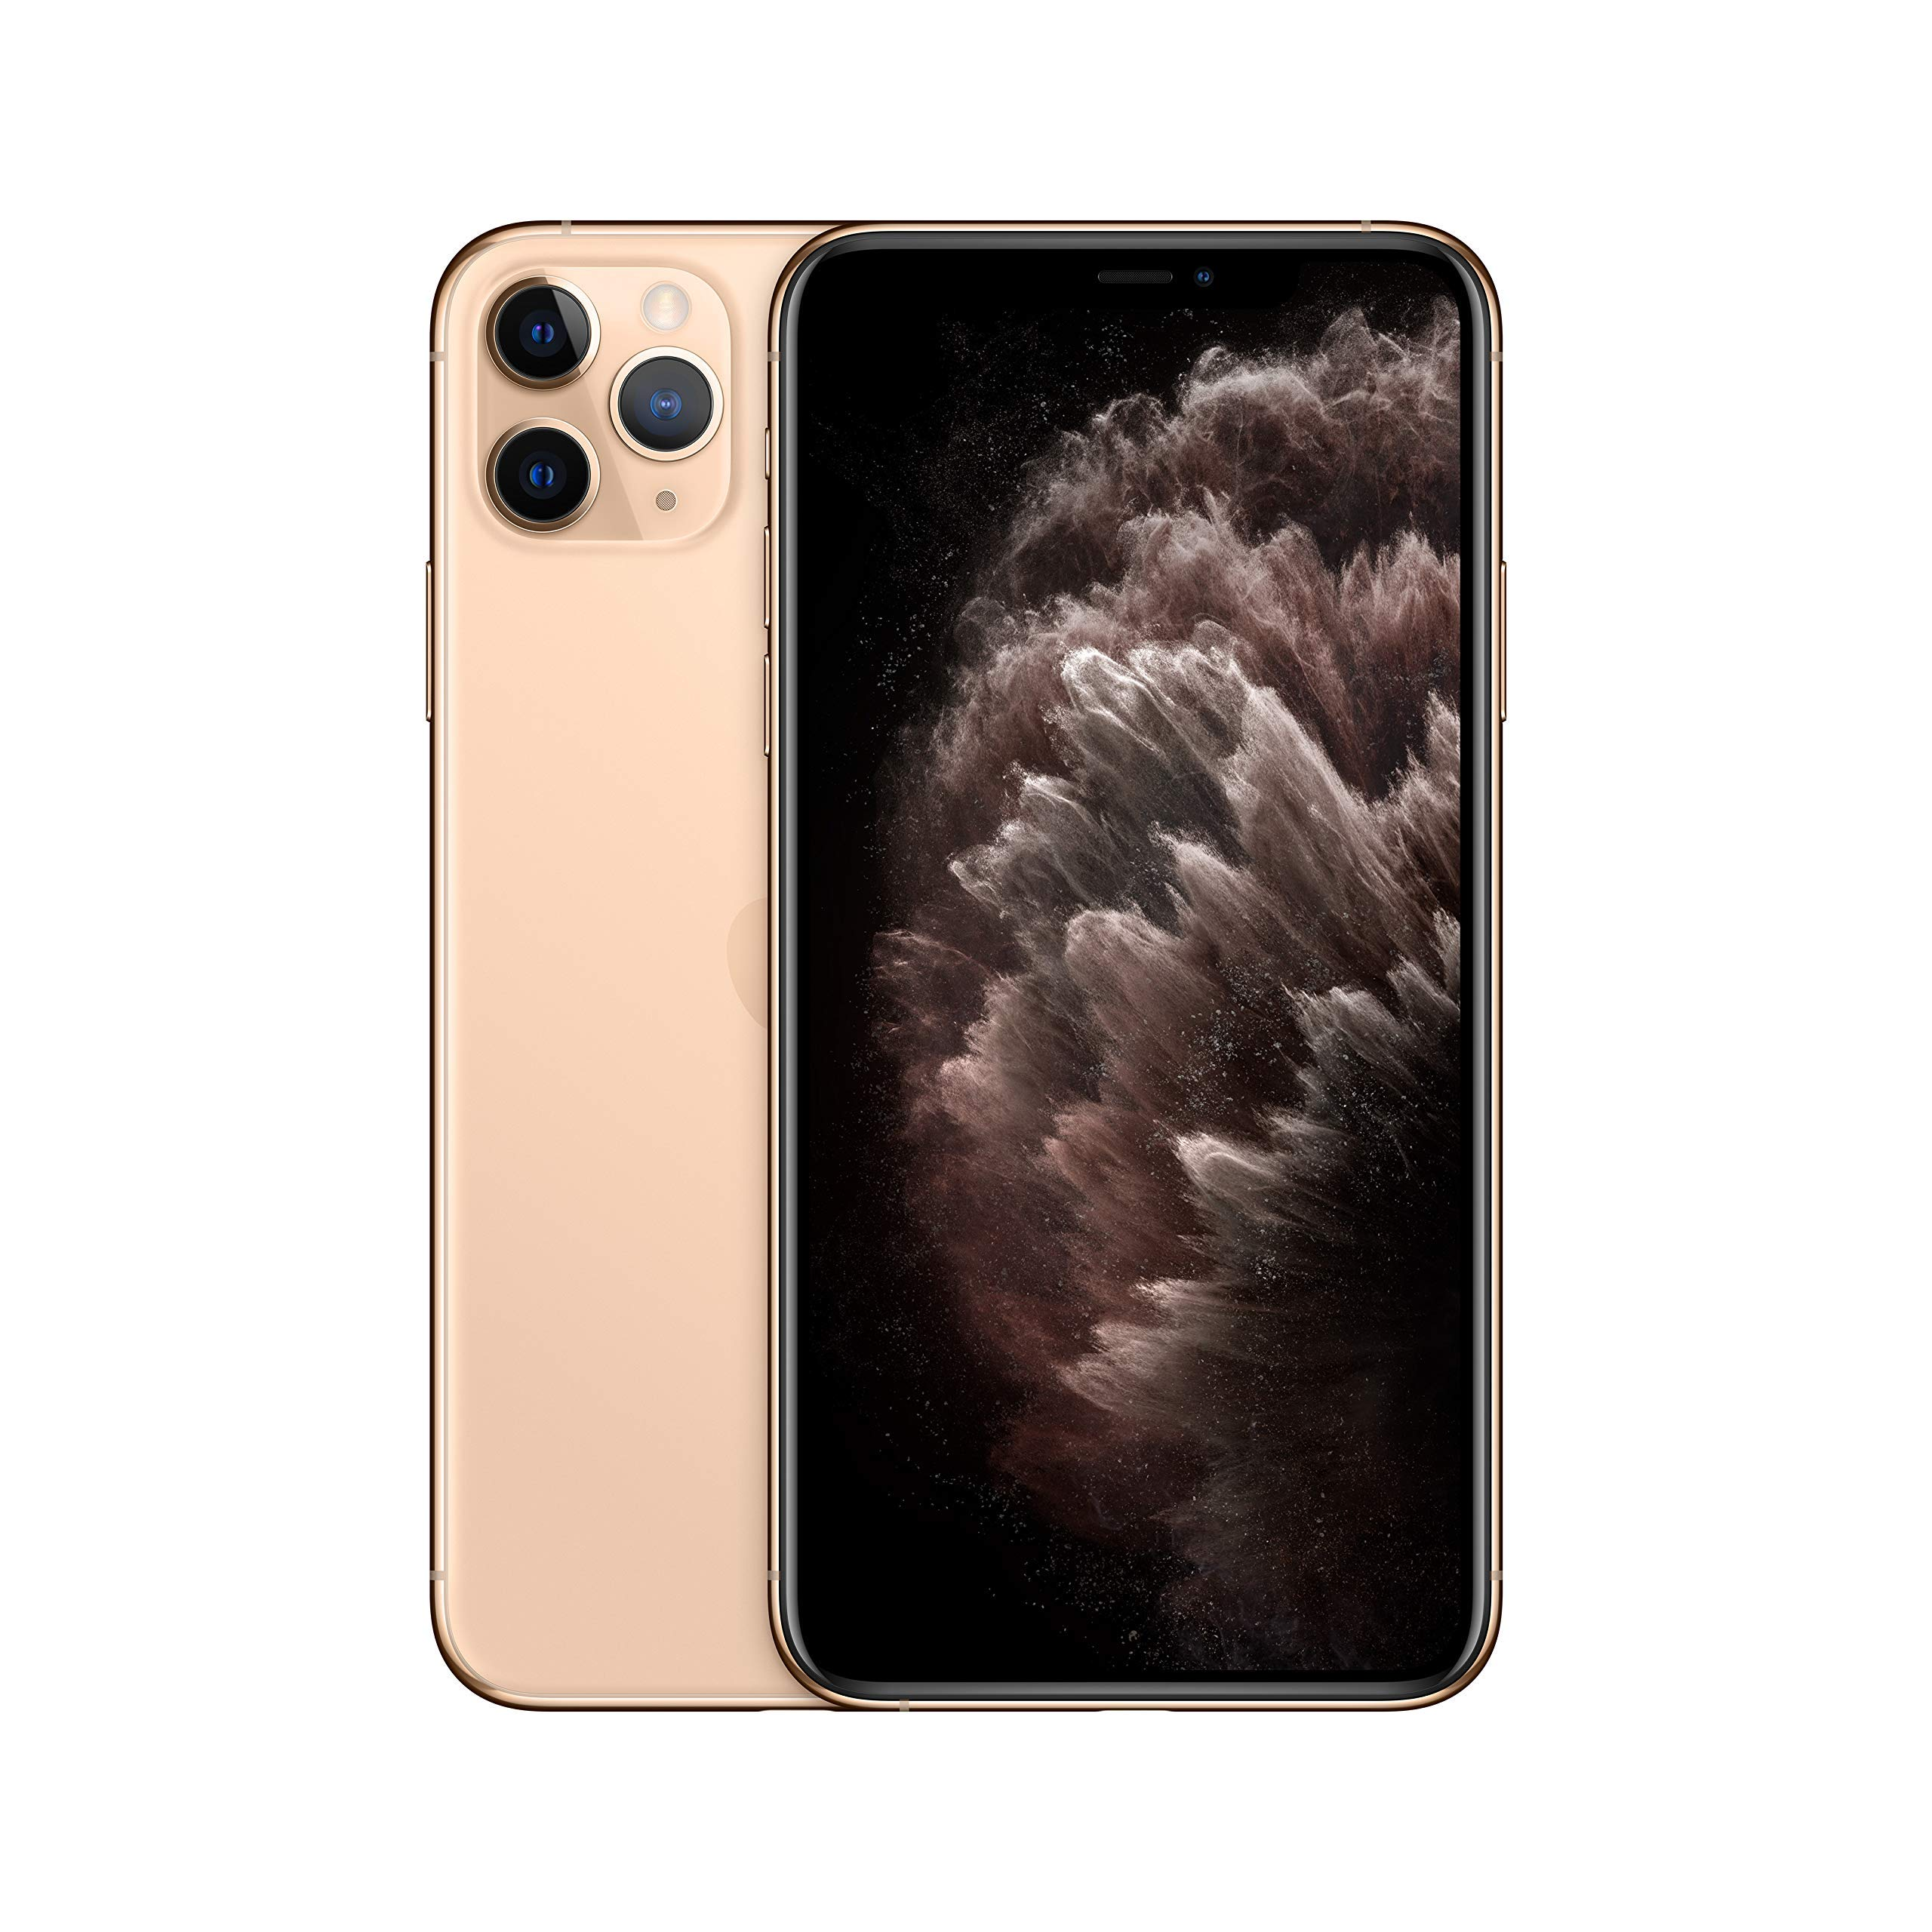 Apple iPhone 11 Pro Max (512GB, Gold) [Locked] + Carrier Subscription (Renewed)